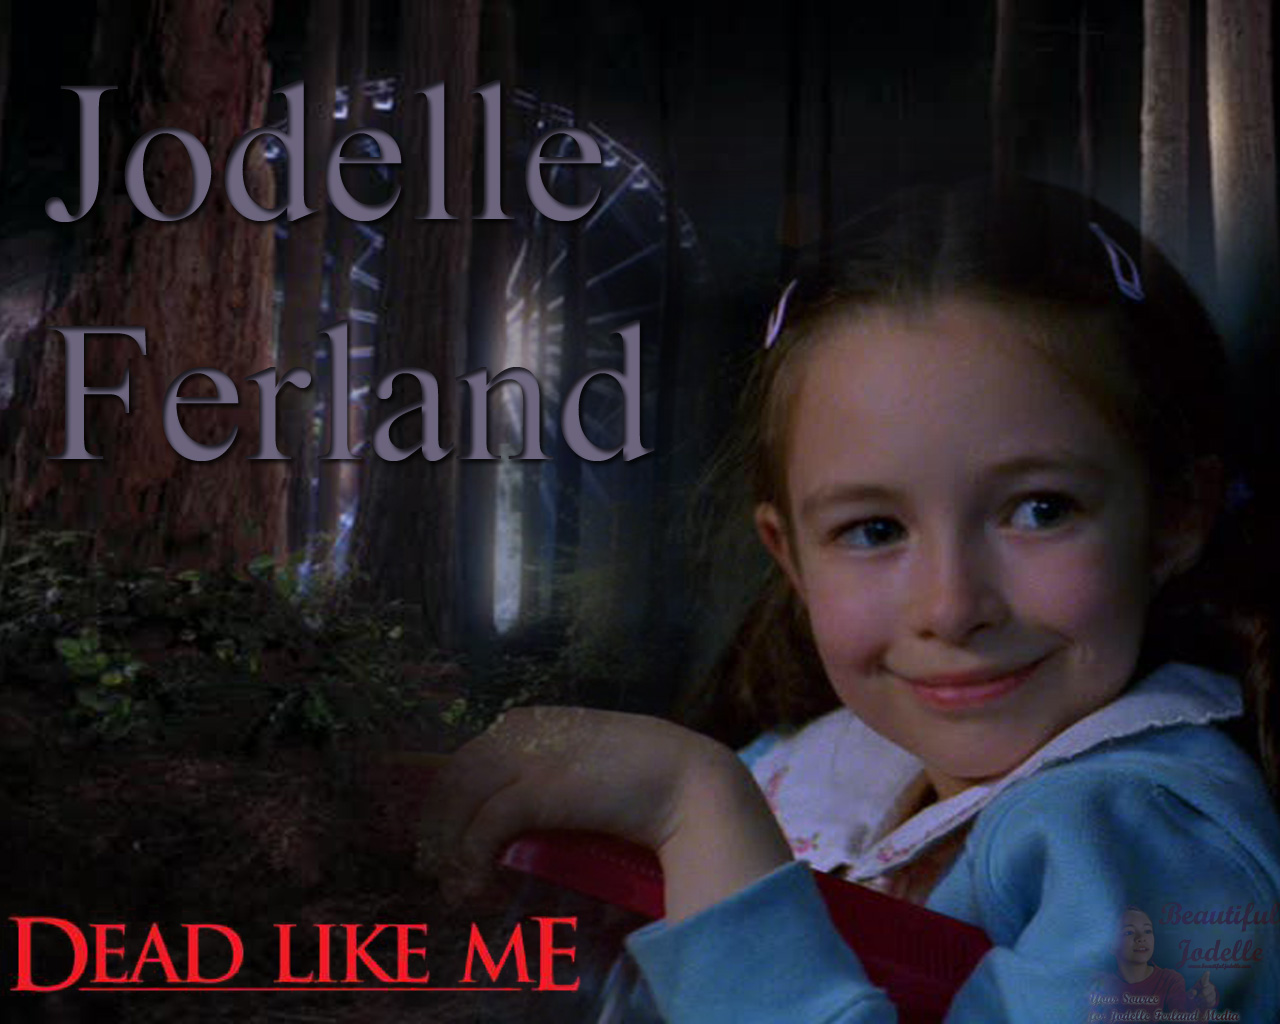 Jodelle Ferland Dead Like Me Wallpaper